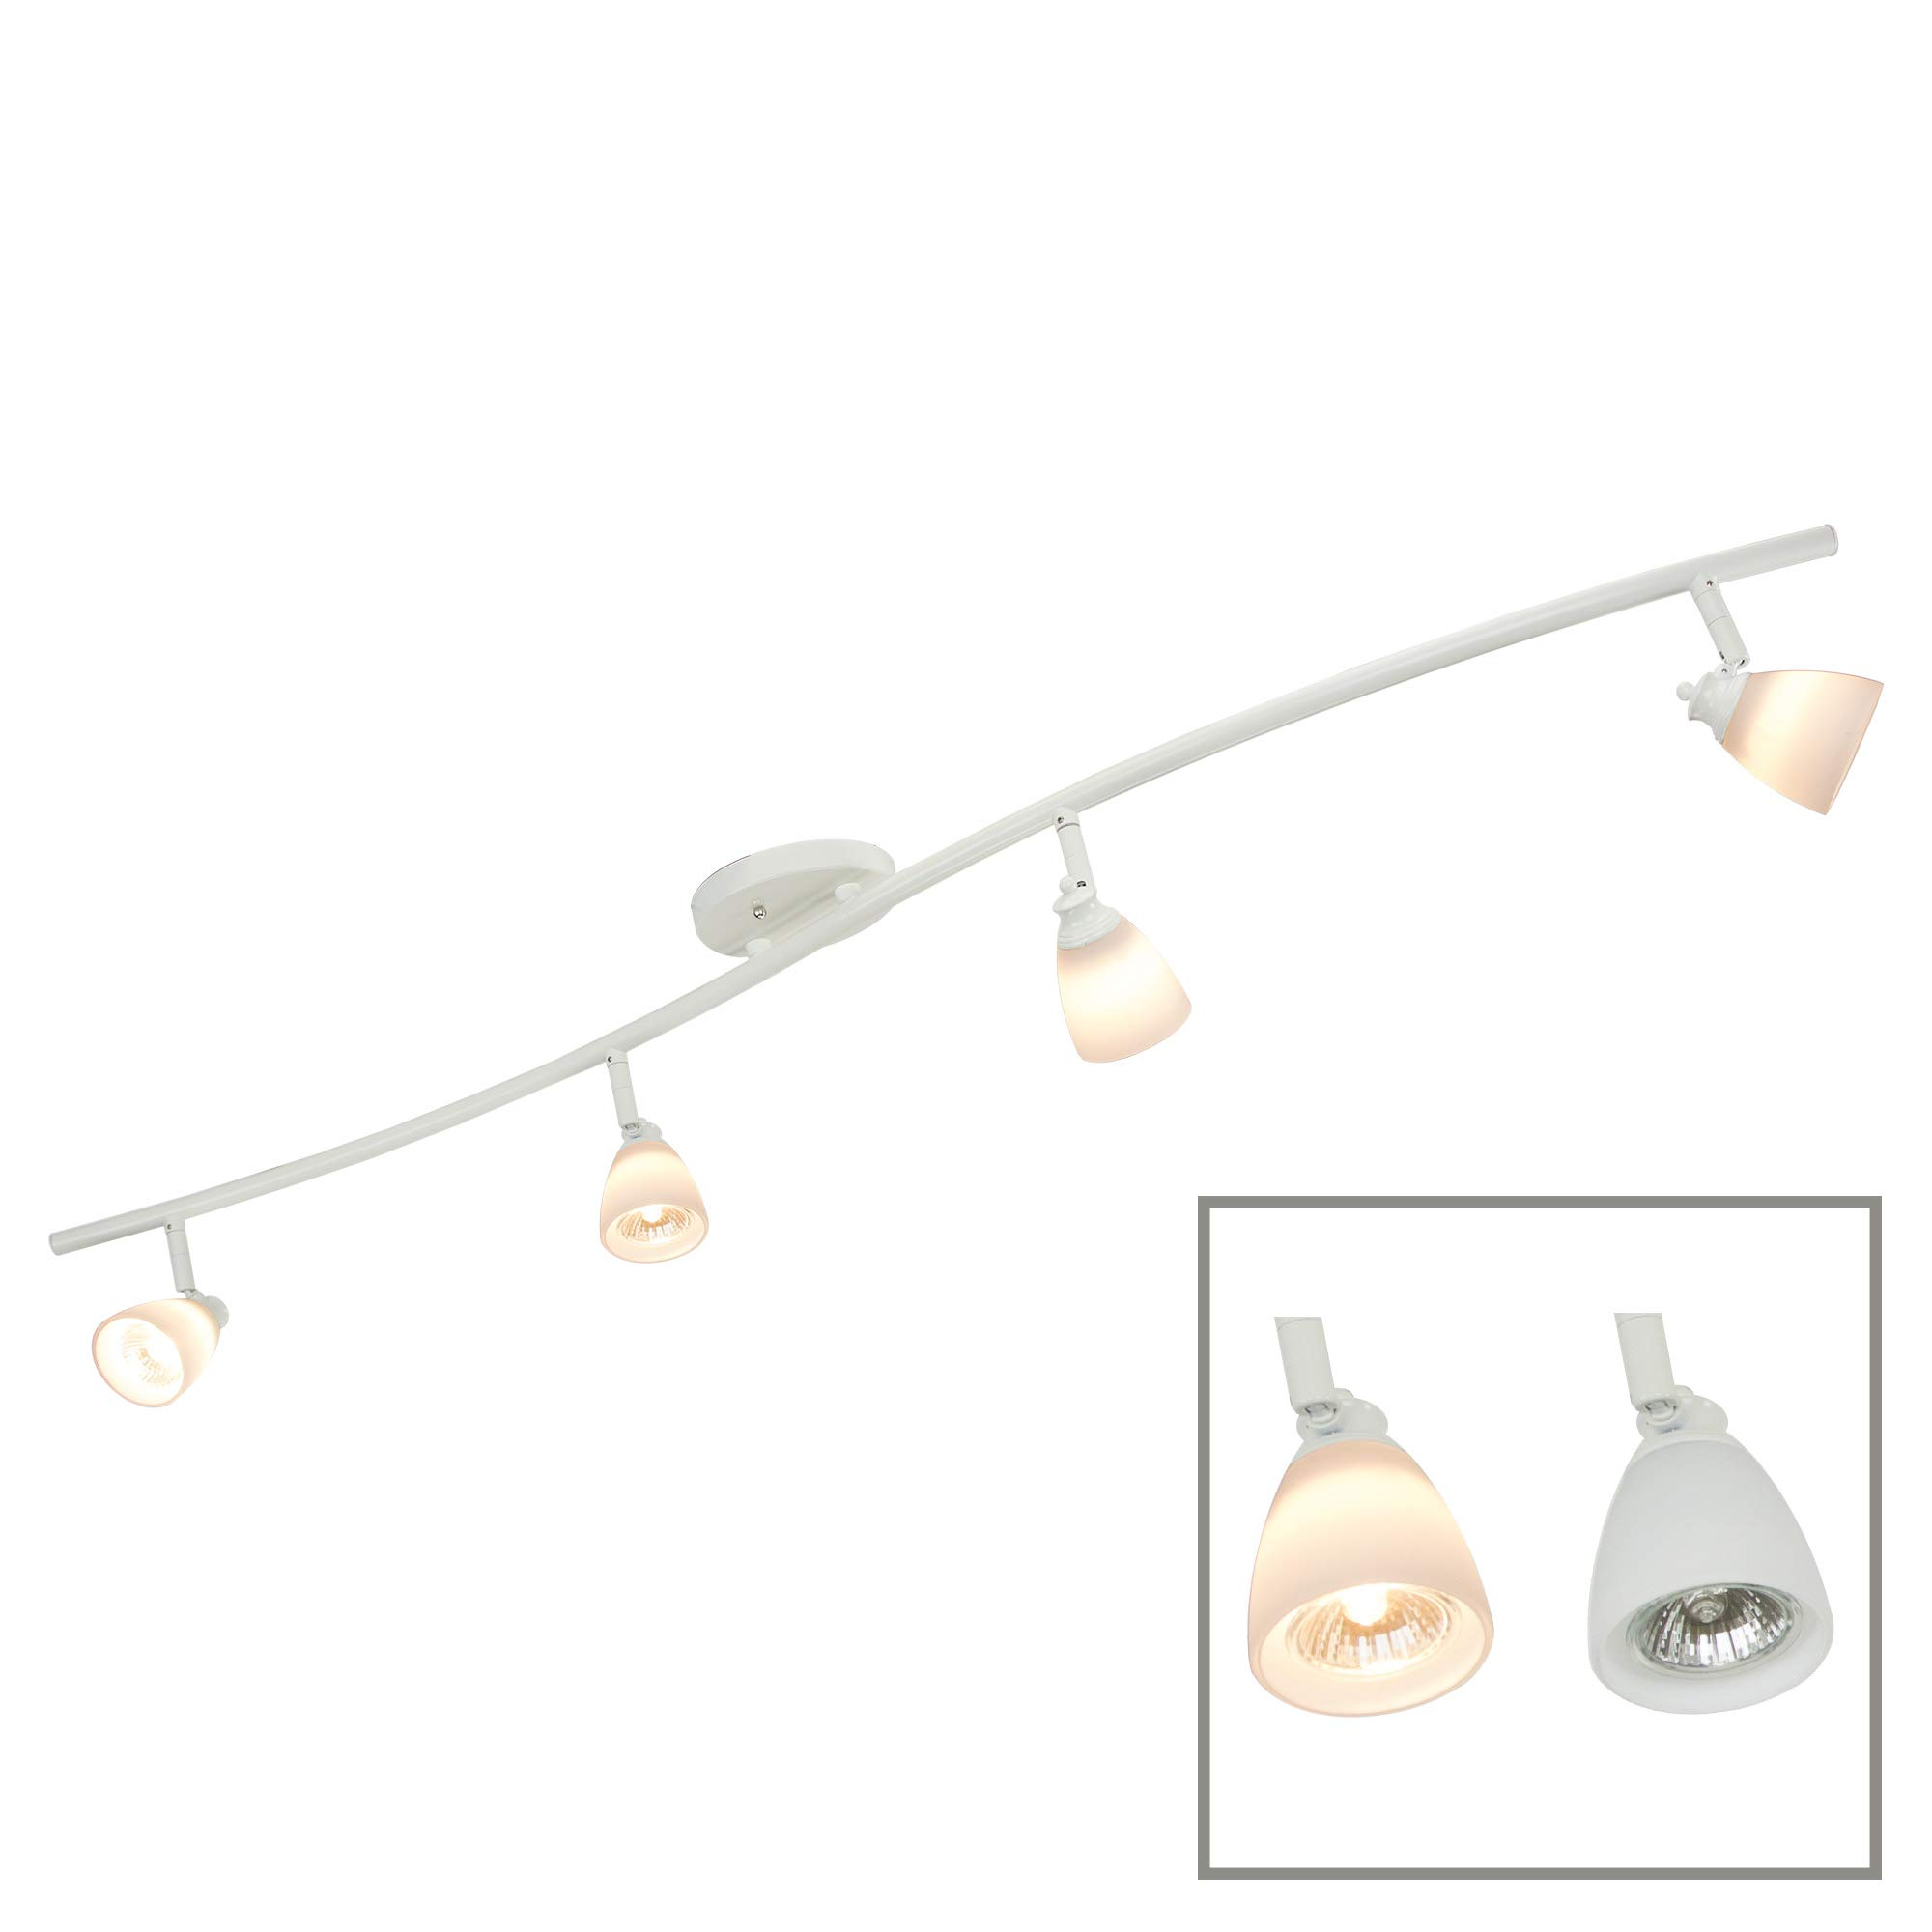 Direct-Lighting 4 Light Adjustable Track Light, White Finish, White Glass Shade, Ready to Install, Bulb Included, D268-44C-WH-WH